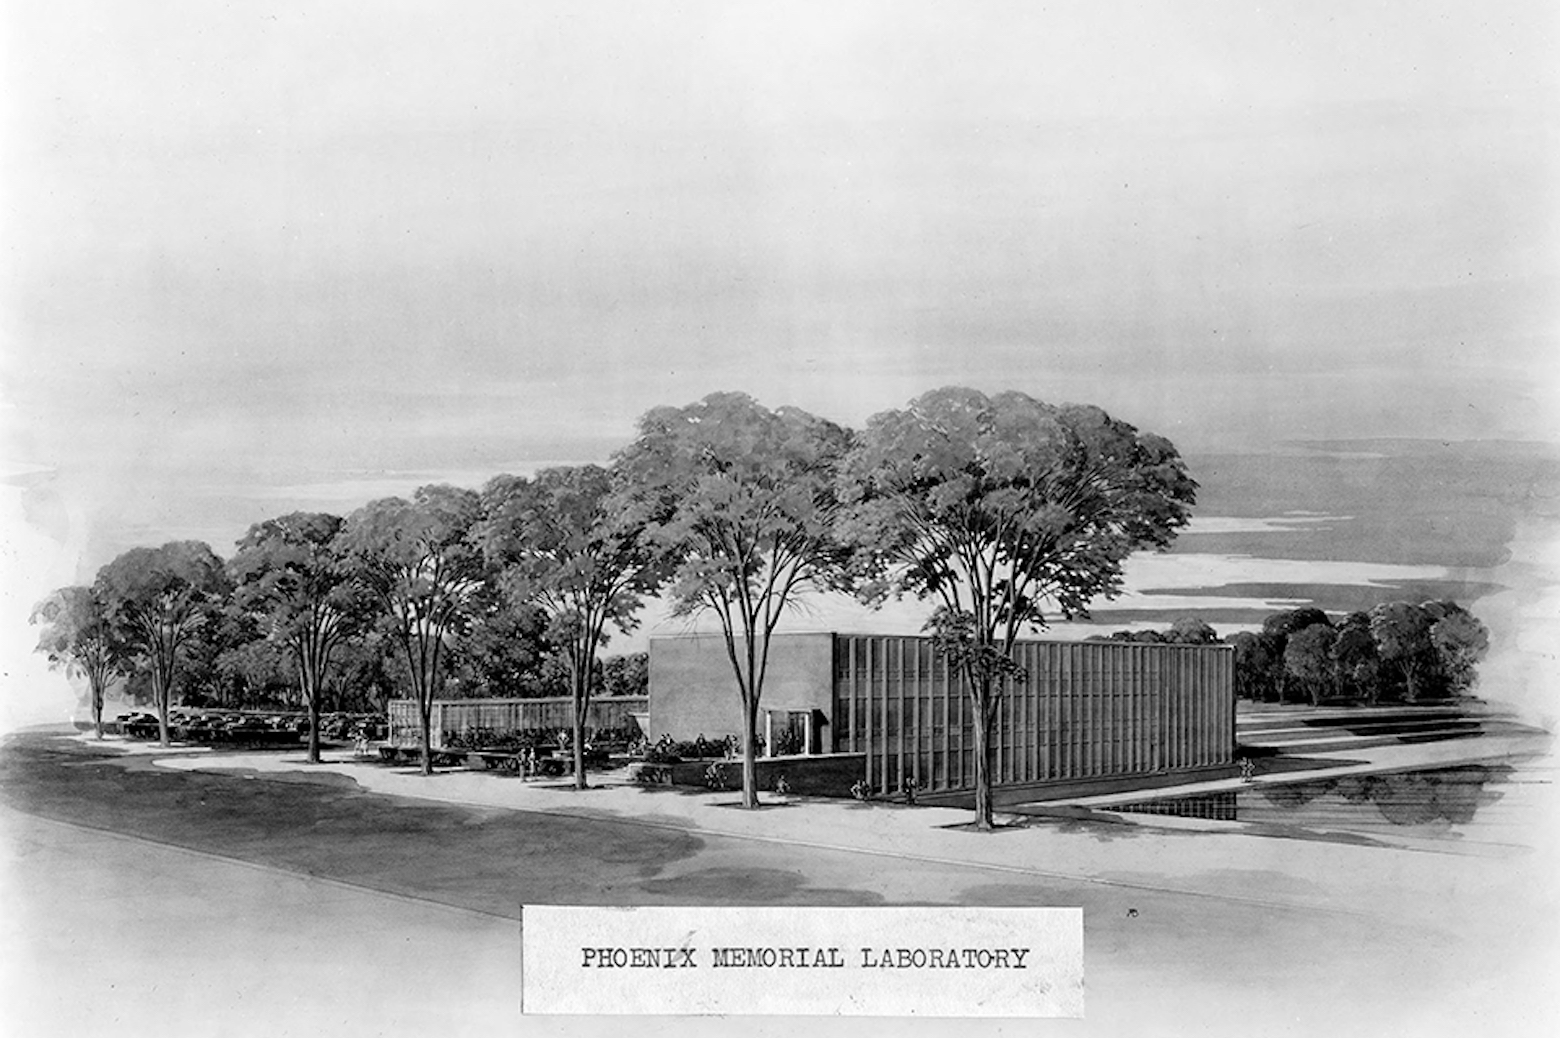 Architect's drawing of Phoenix Memorial Laboratory